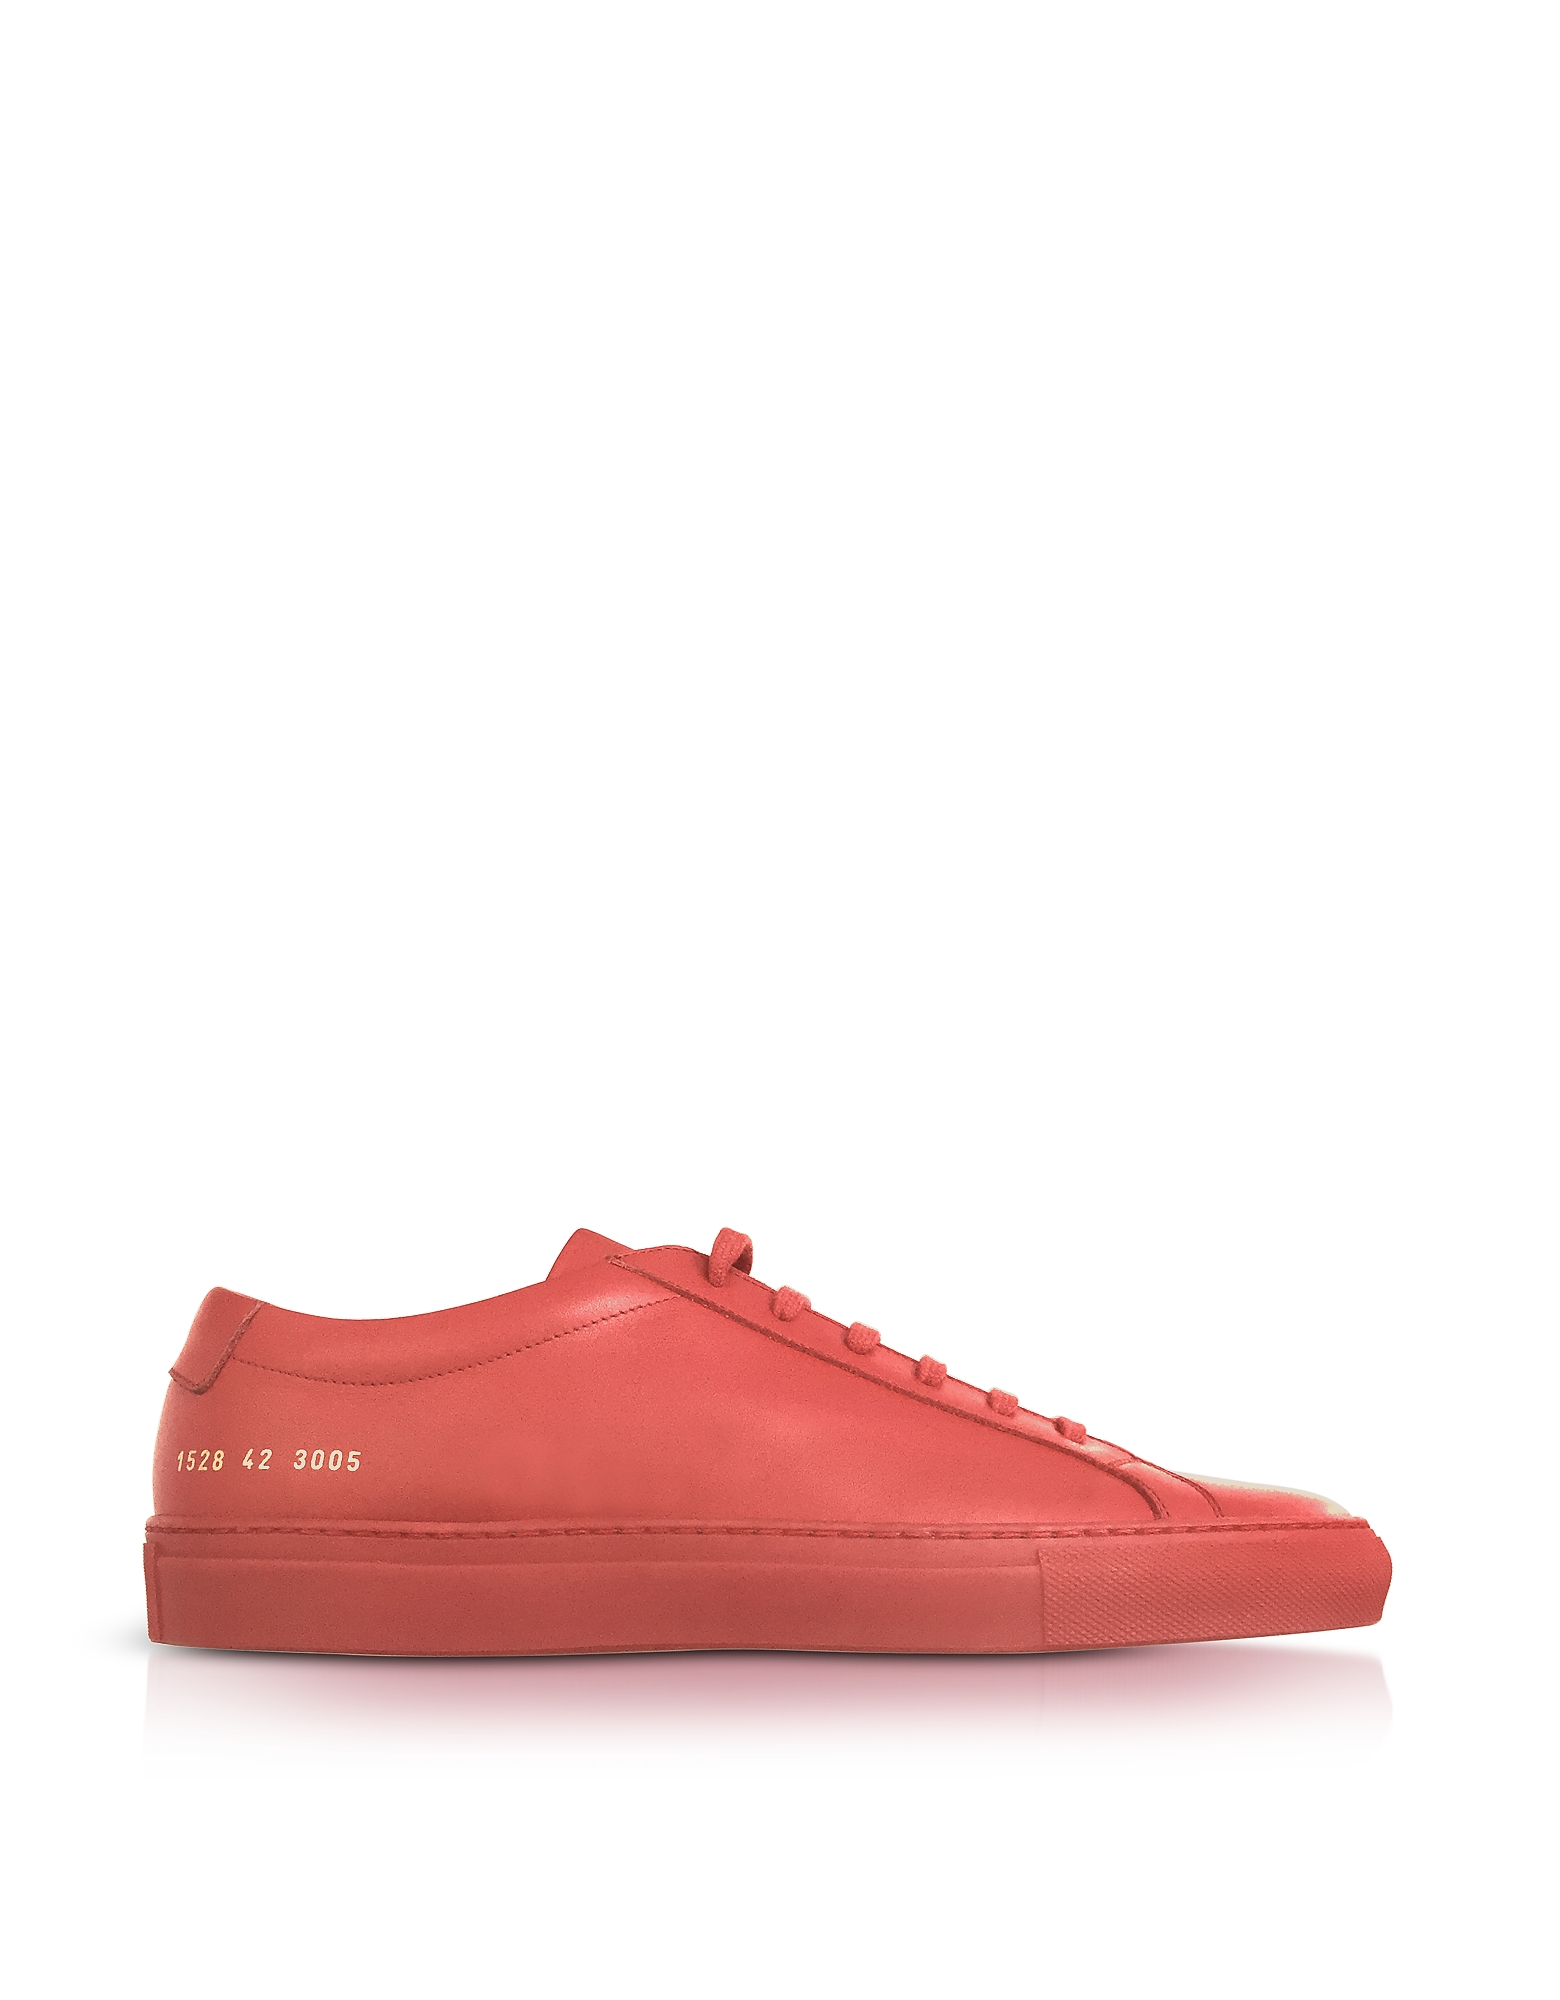 Common Projects Shoes, Original Achilles Low Red Leather Men's Sneaker